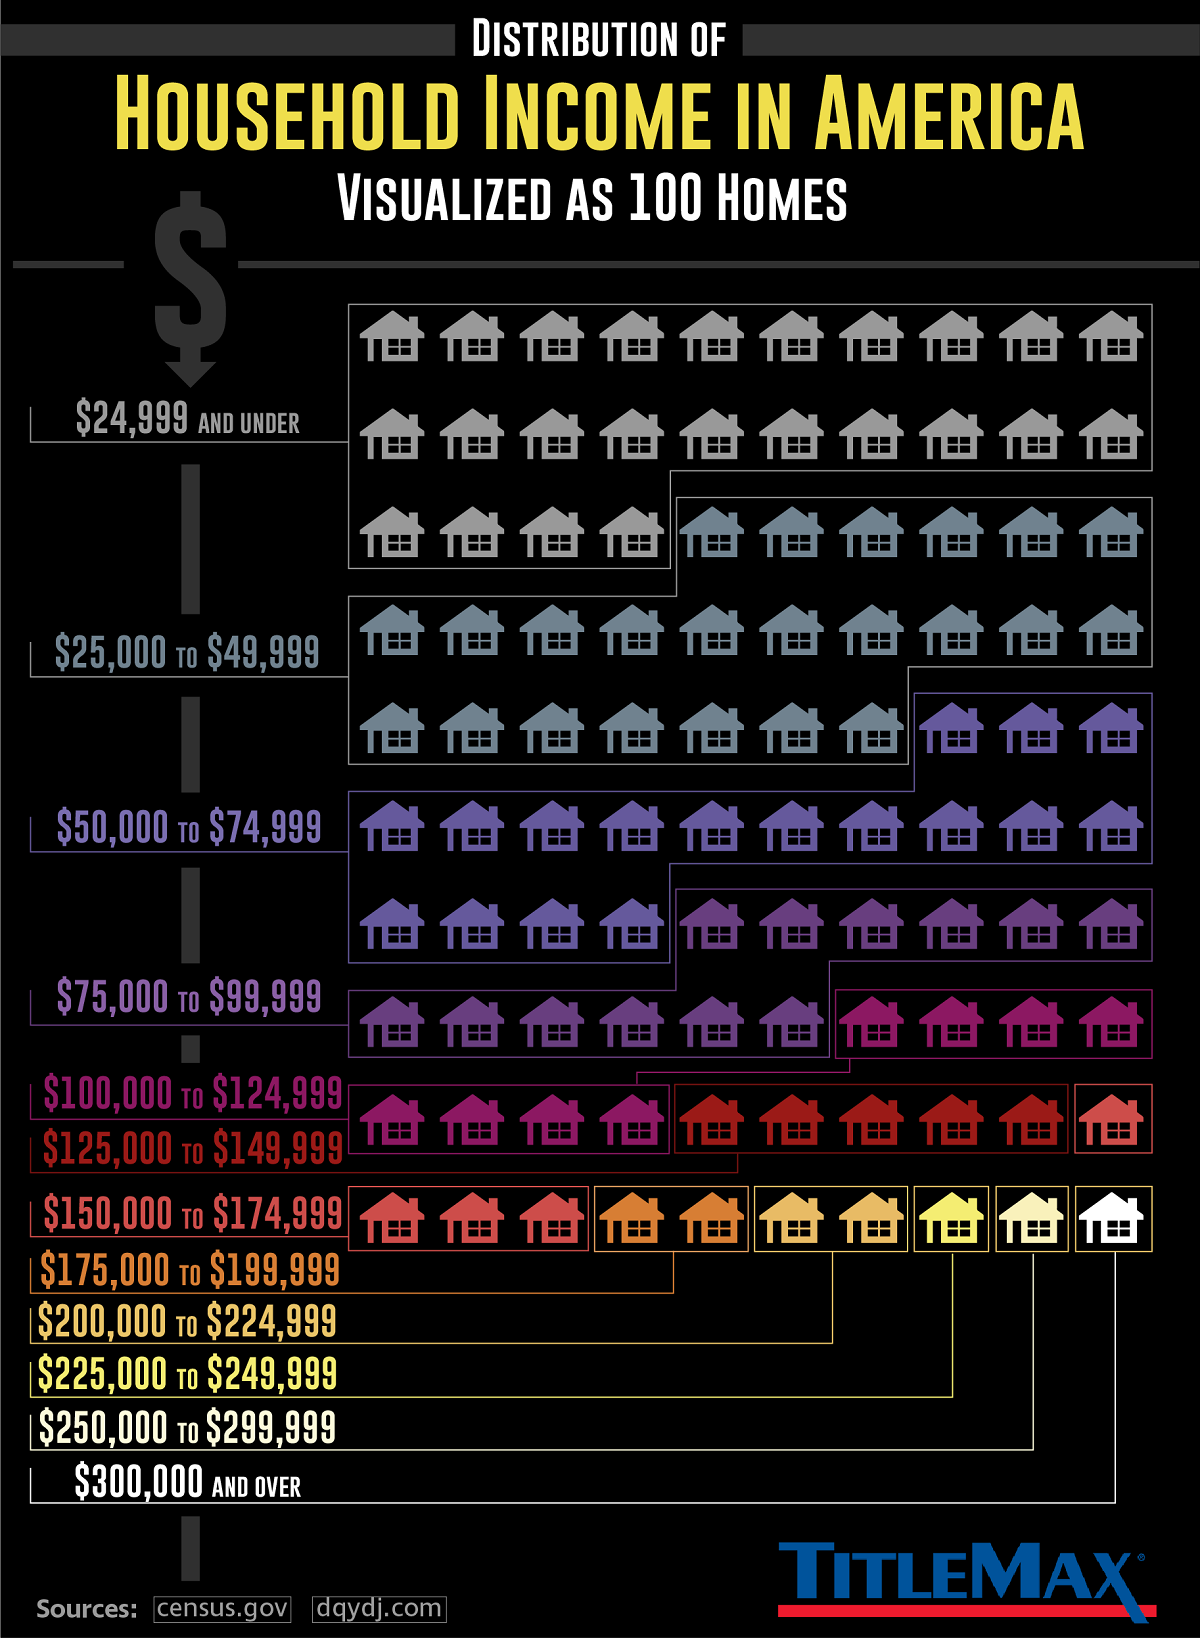 Distribution of Household Income in America, Visualized as 100 Homes #Infographic